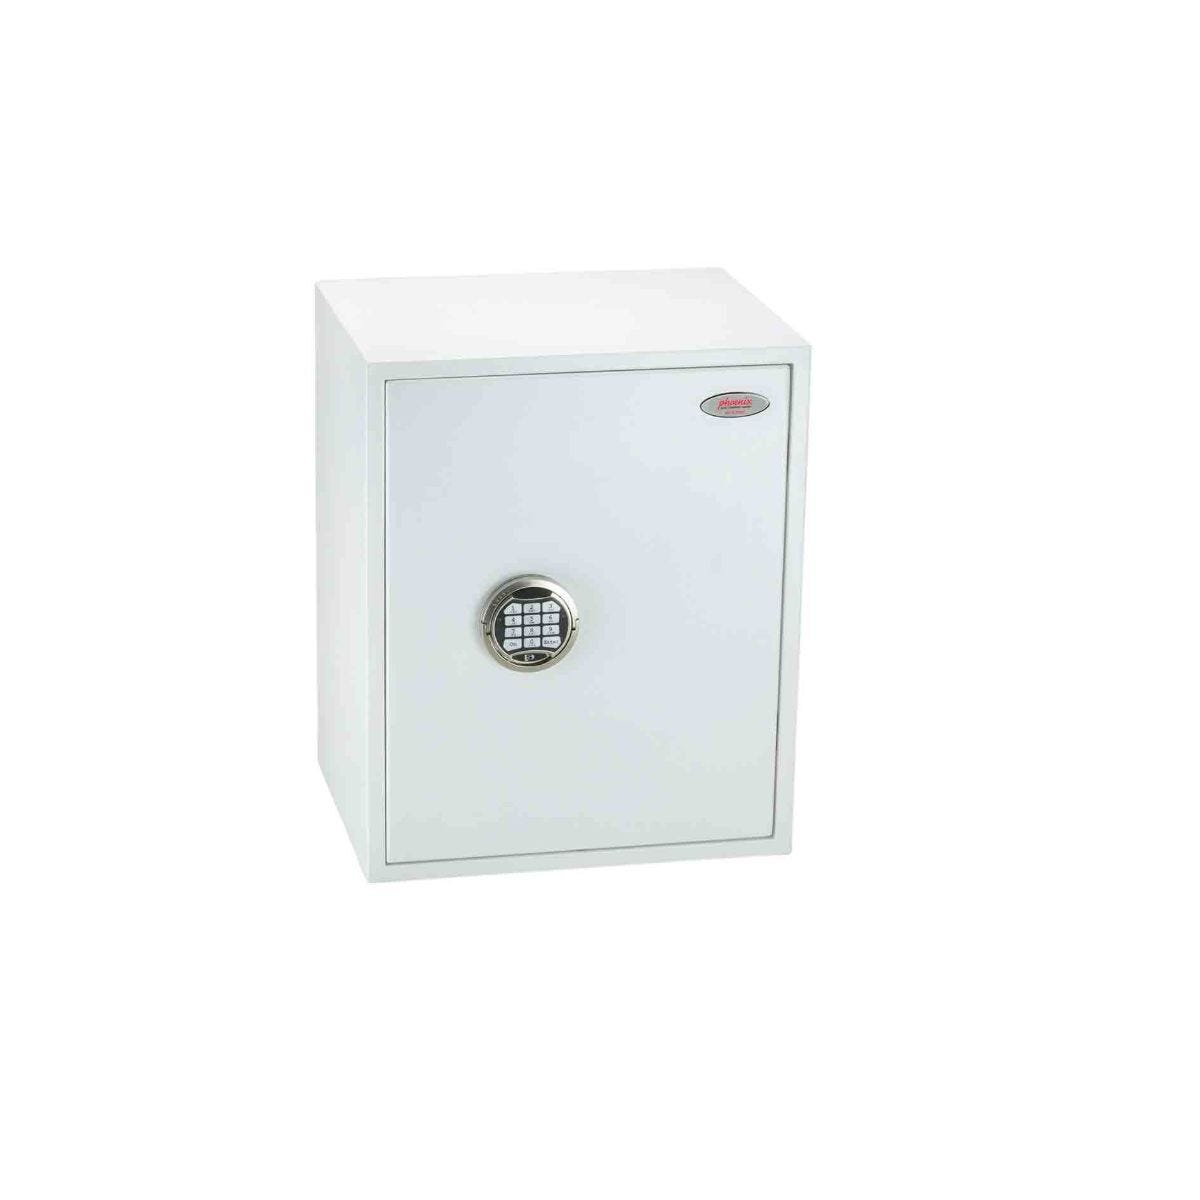 Phoenix Fortress S2 Security Safe with Electronic Lock Size 3